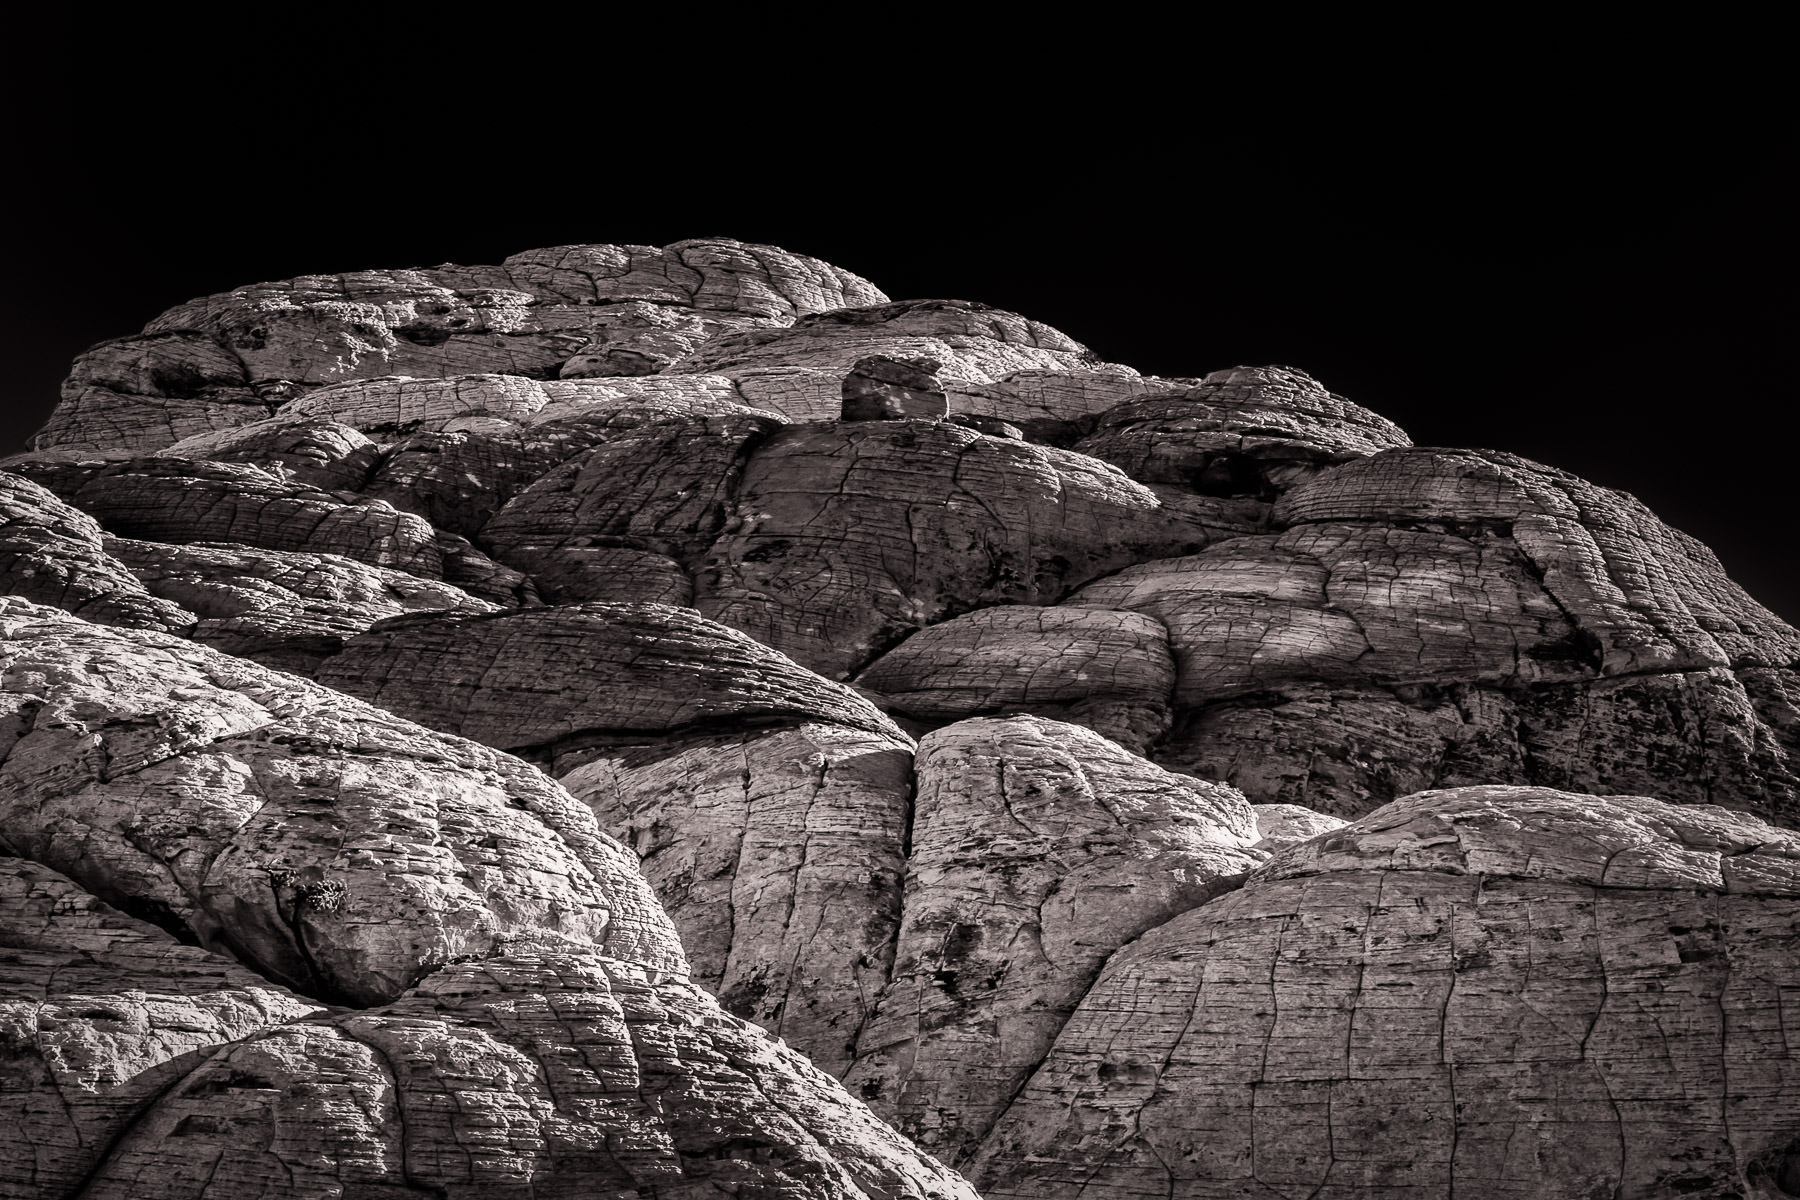 Detail of rocks at Nevada's Red Rock Canyon.